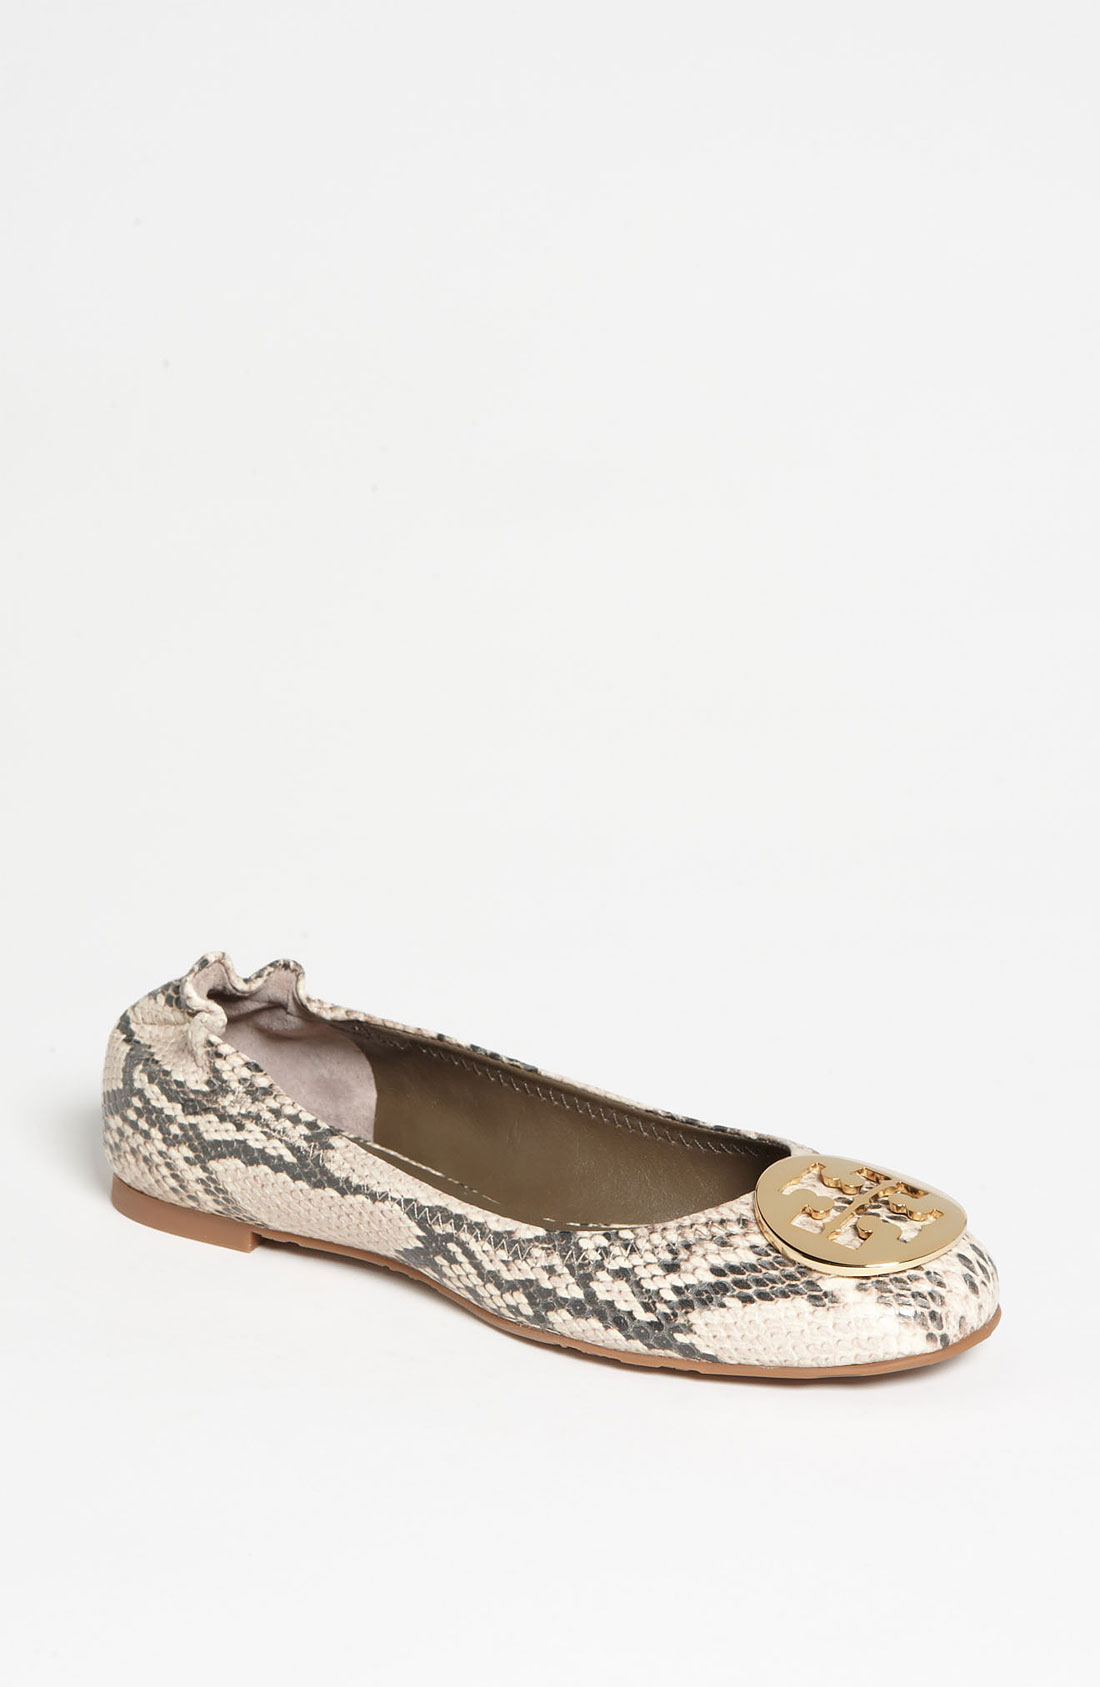 The Tory Burch Reva flat is an iconic ballet flat that doesn't go out of style. The Reva flats feature the unique Tory Burch double-T logo. Reva flats are definitely a wardrobe essential for the woman who loves flats.